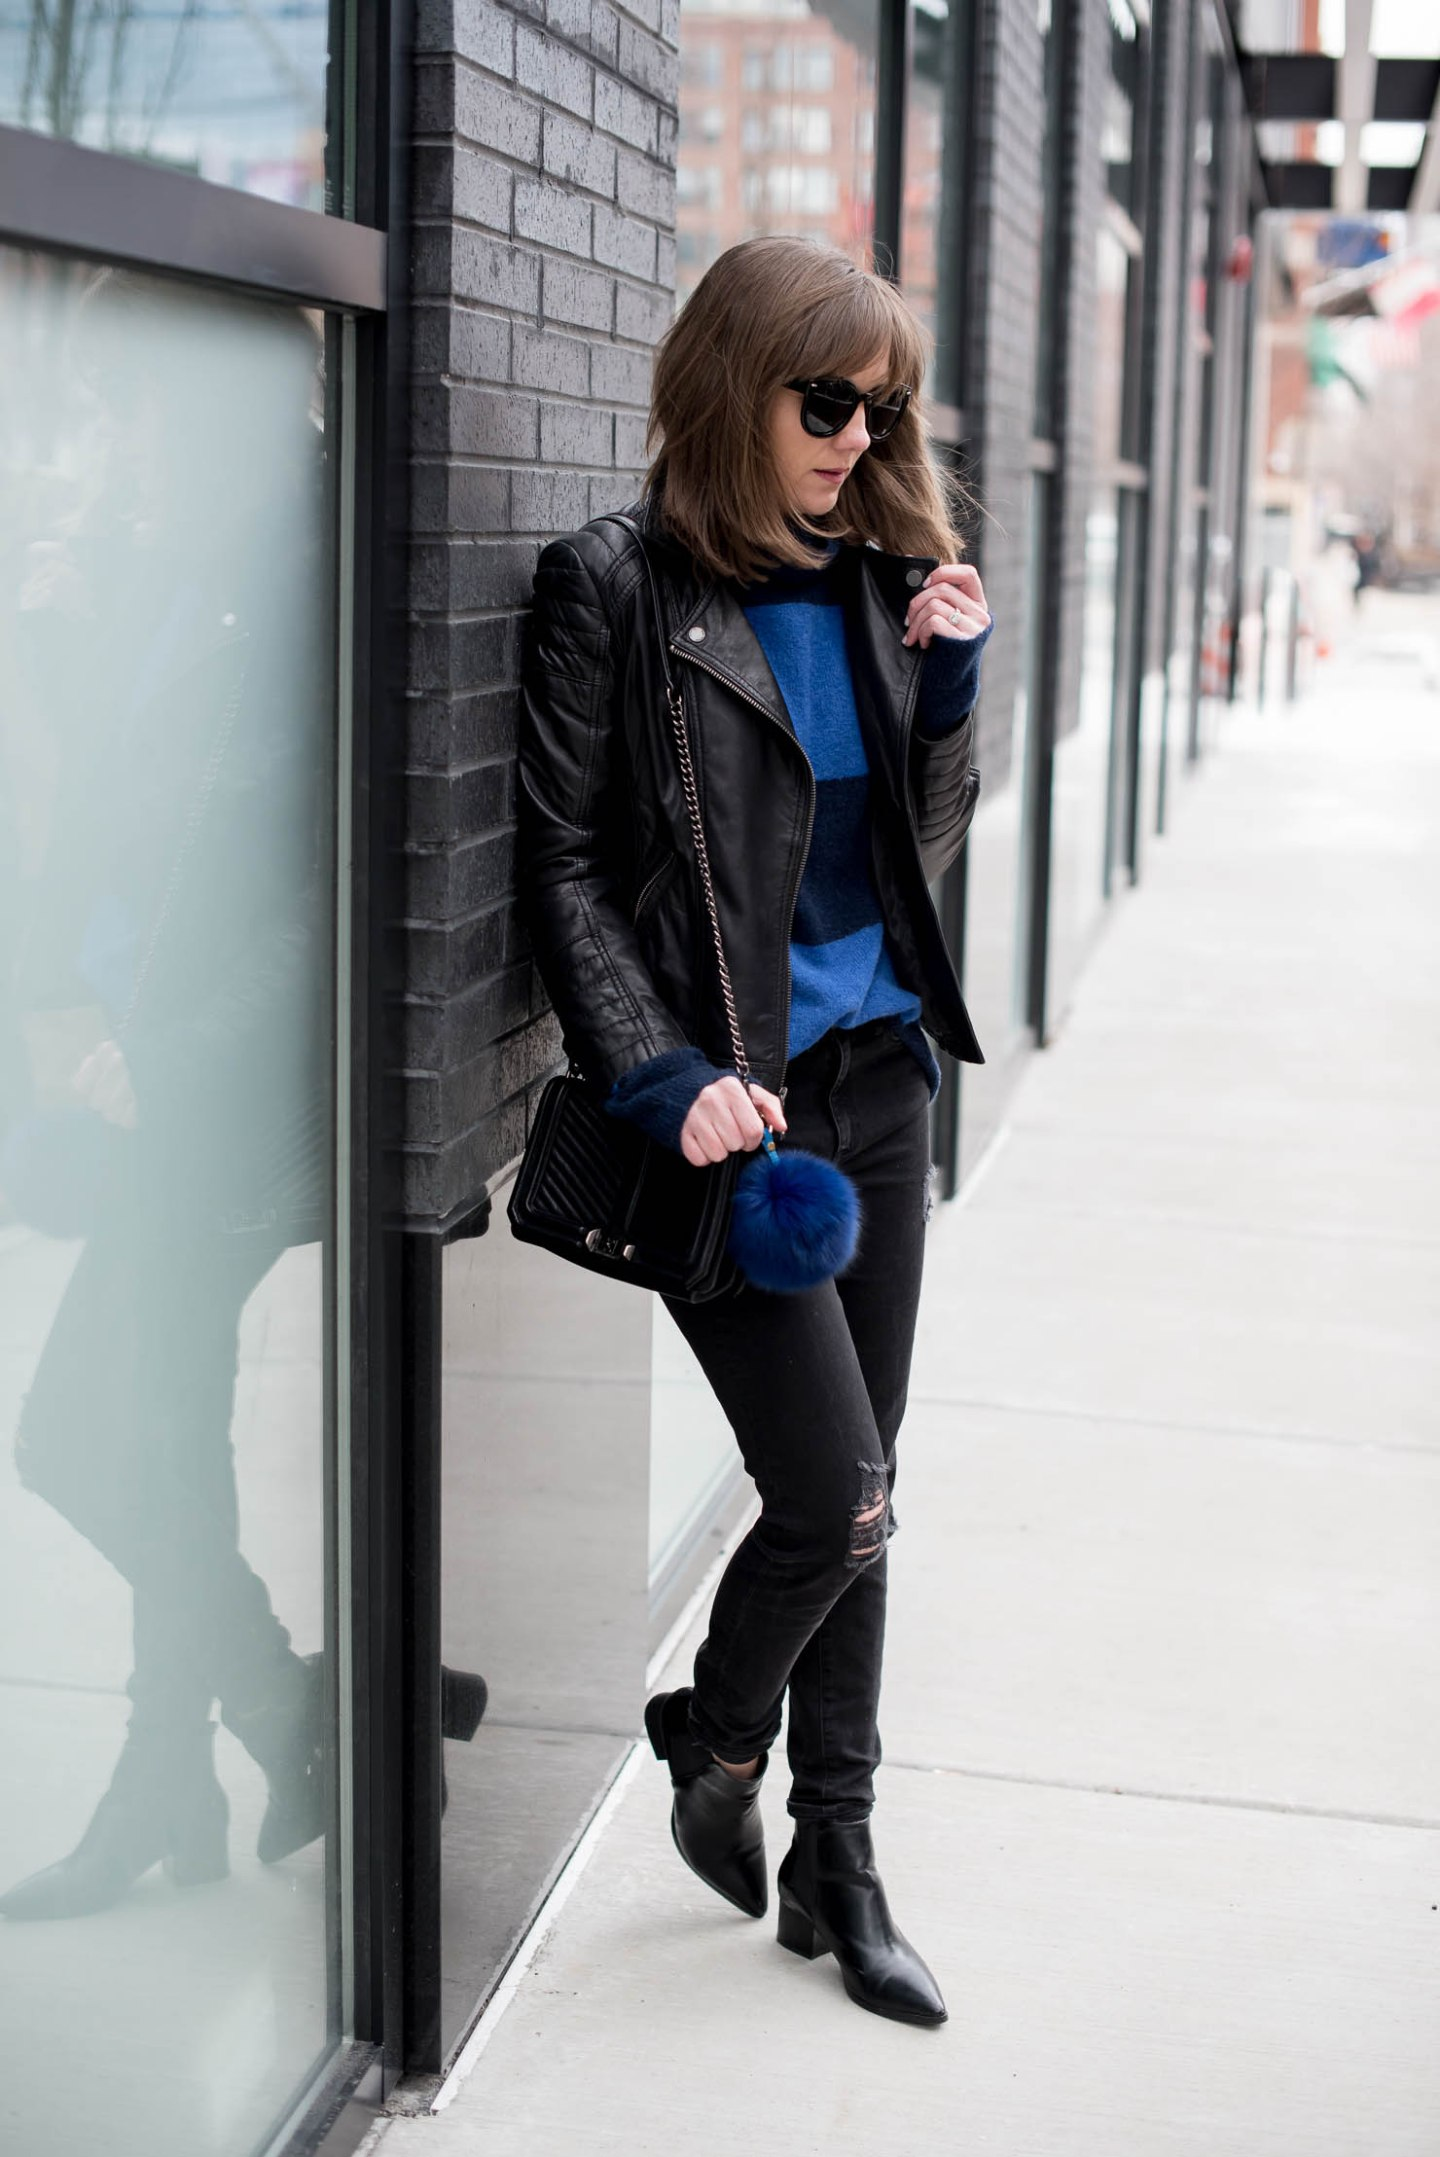 cozy-spring-outfit-blue-and-black-look-styling-th-classic-moto-jacket